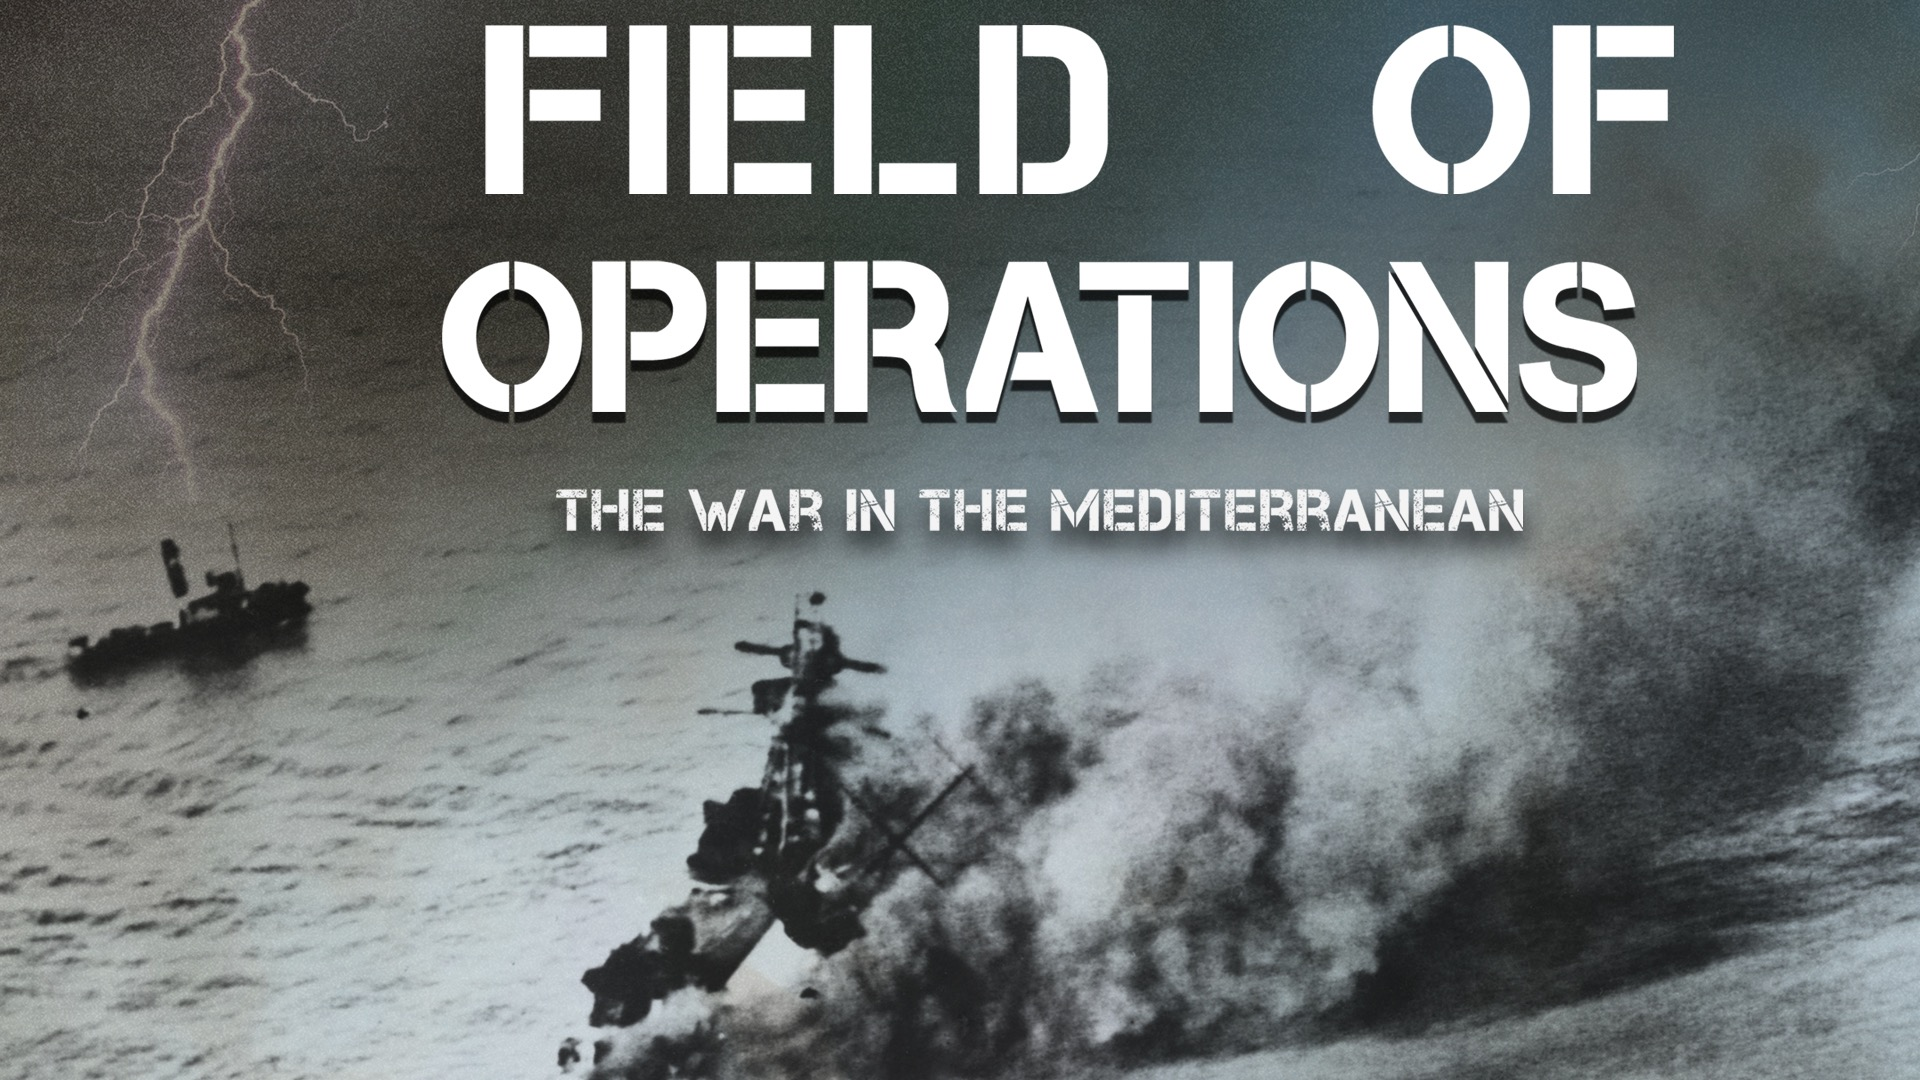 Field of Operations: The War in the Mediterranean